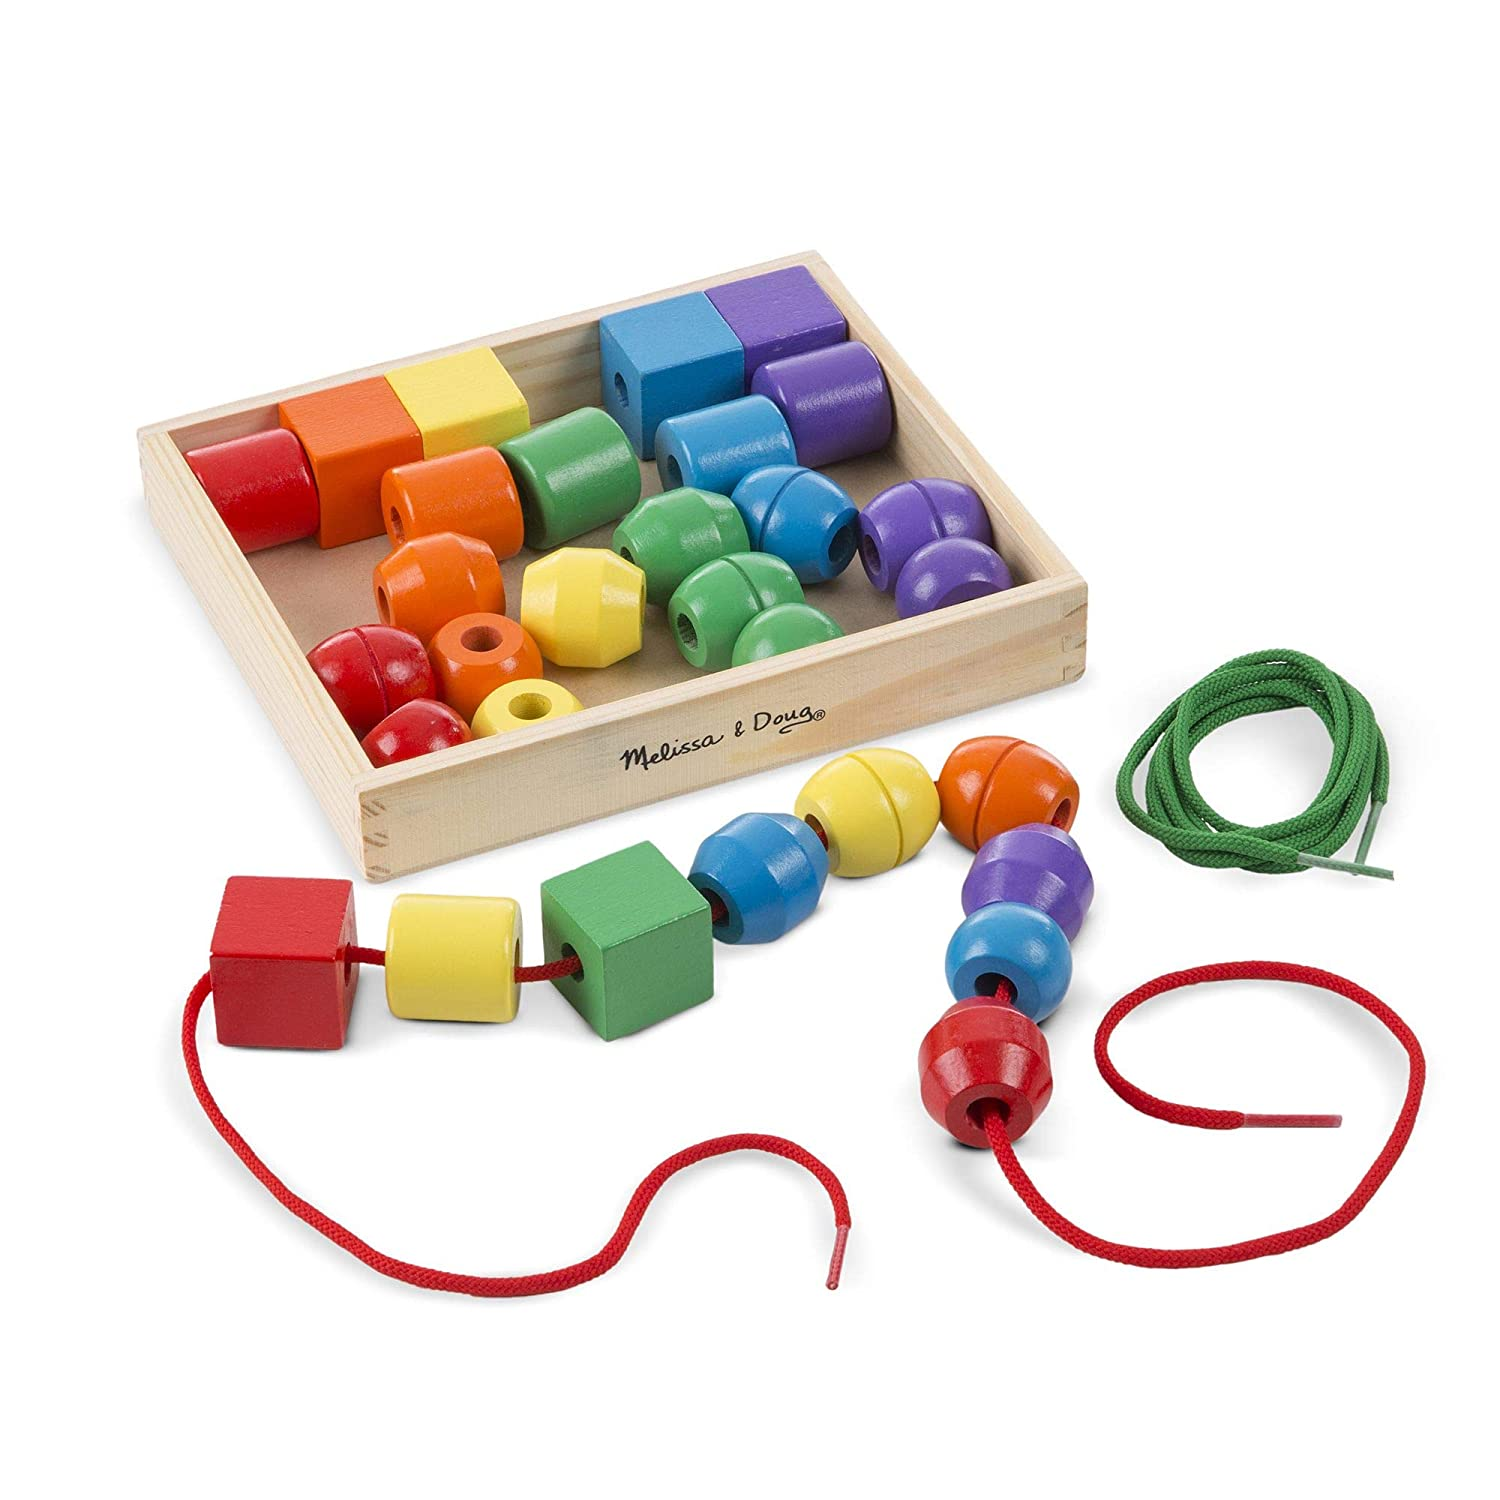 Melissa Doug Primary Lacing Beads with 30 Beads and 2 laces